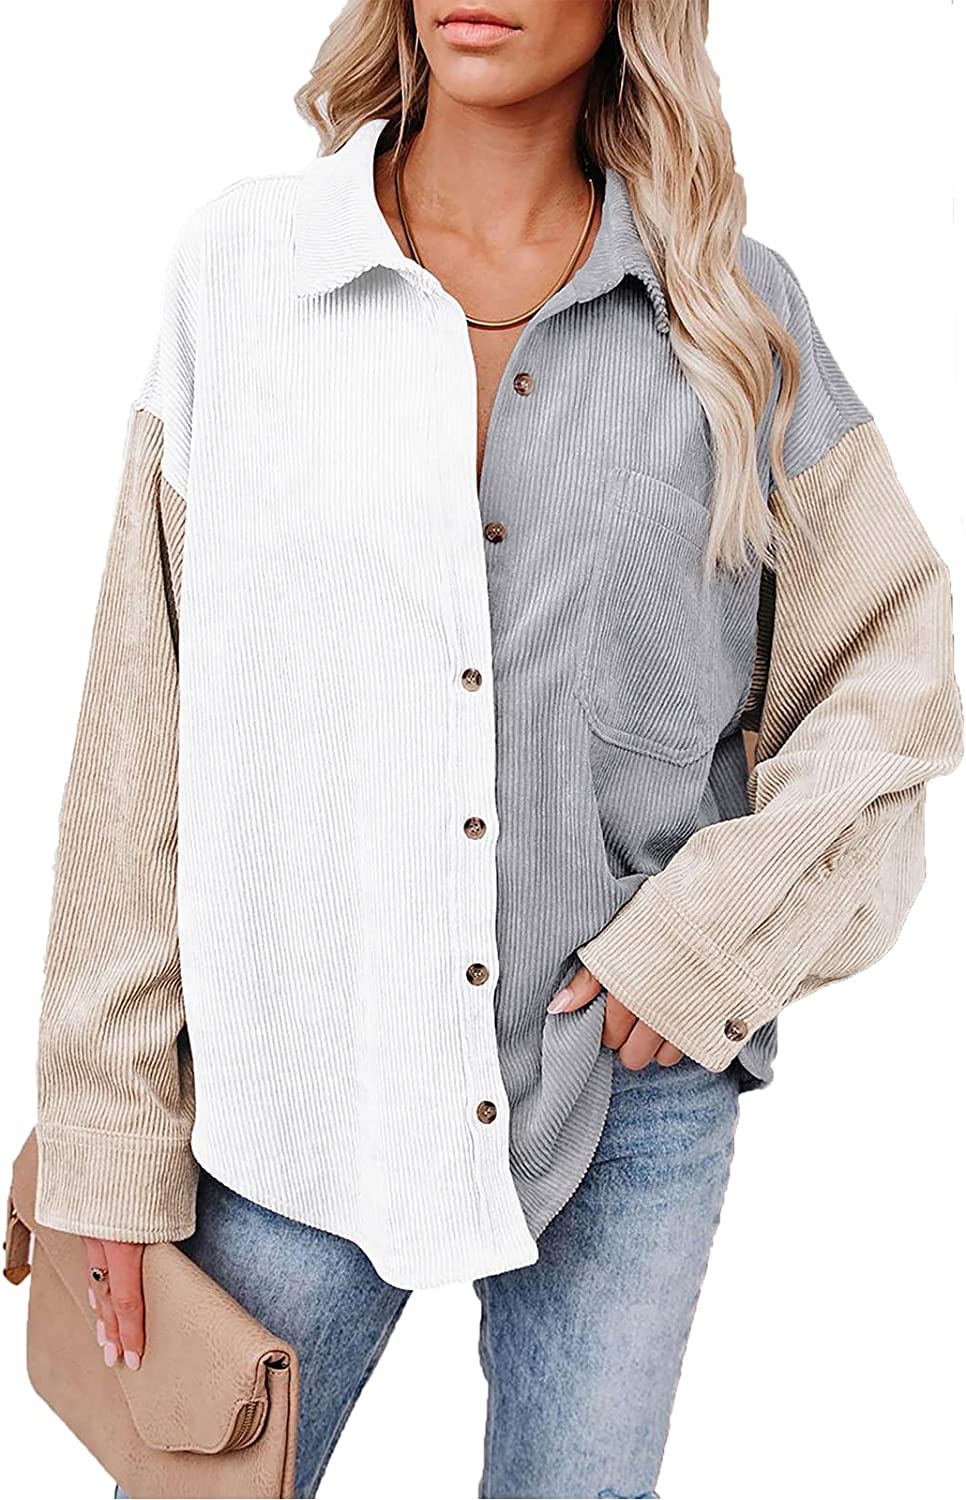 KOJOOIN Womens Corduroy Shirts Button Down Color Block Blouses Tops